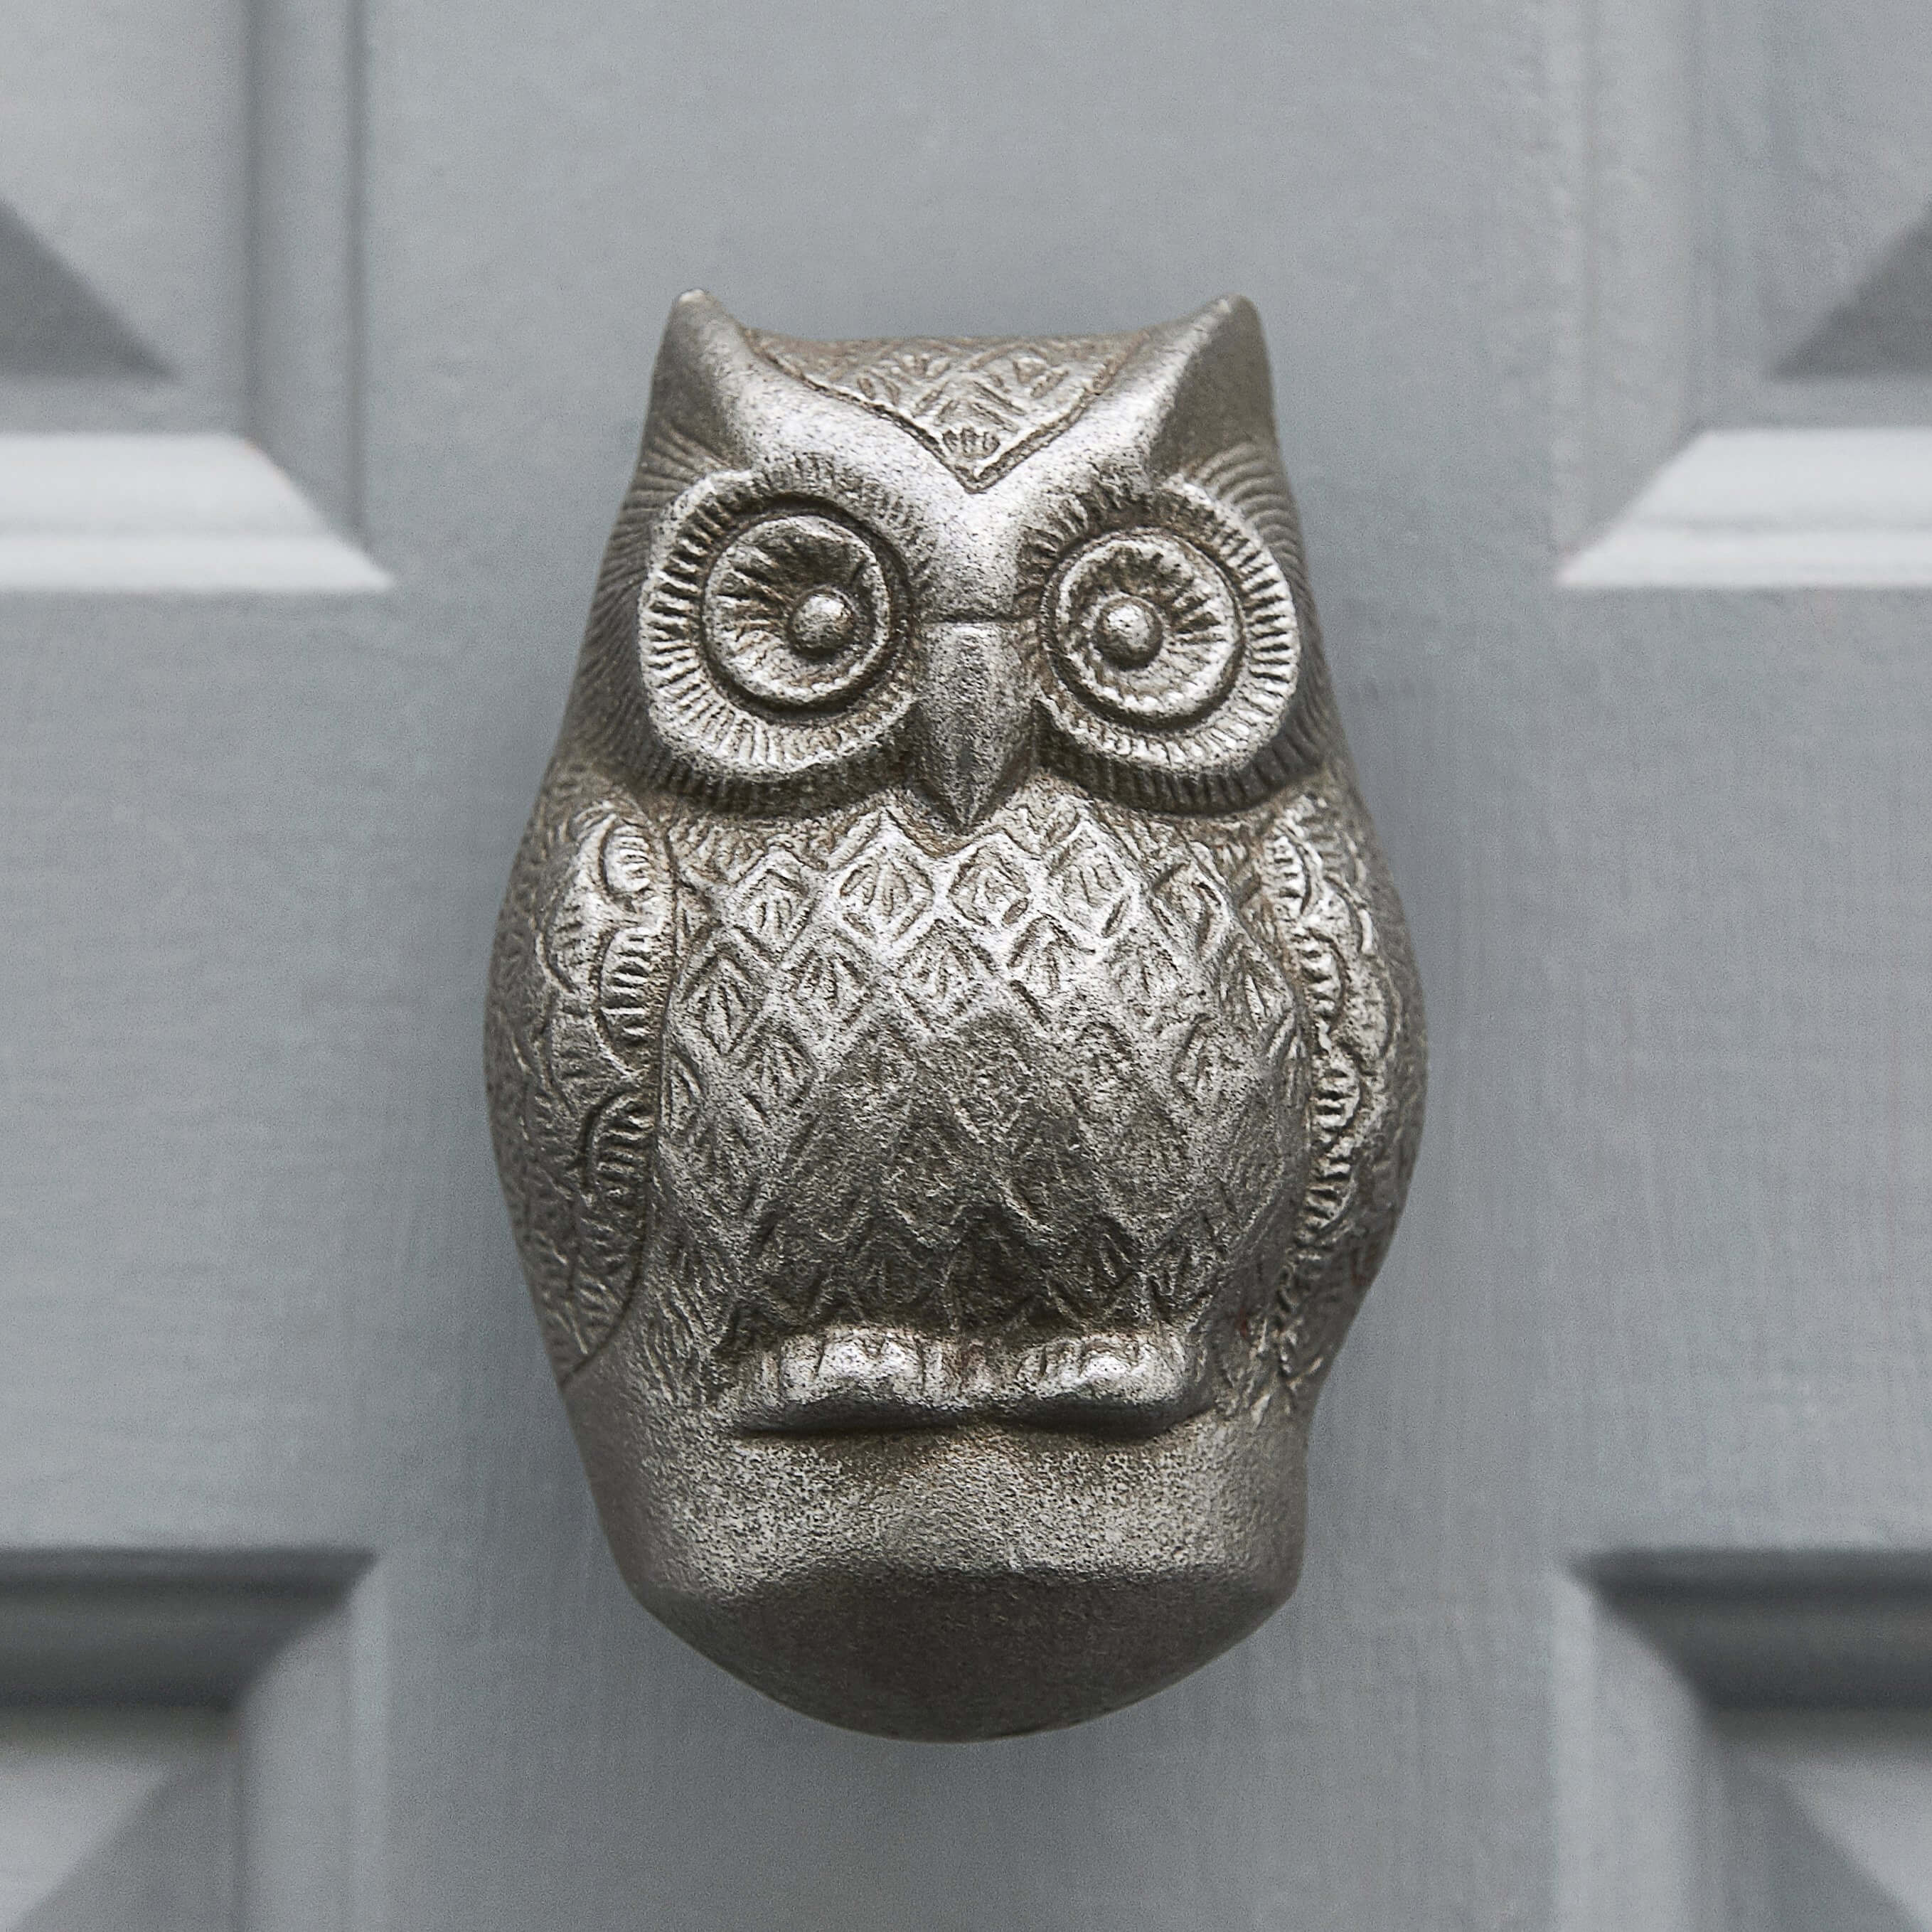 Owl Door Knocker - Antique Iron